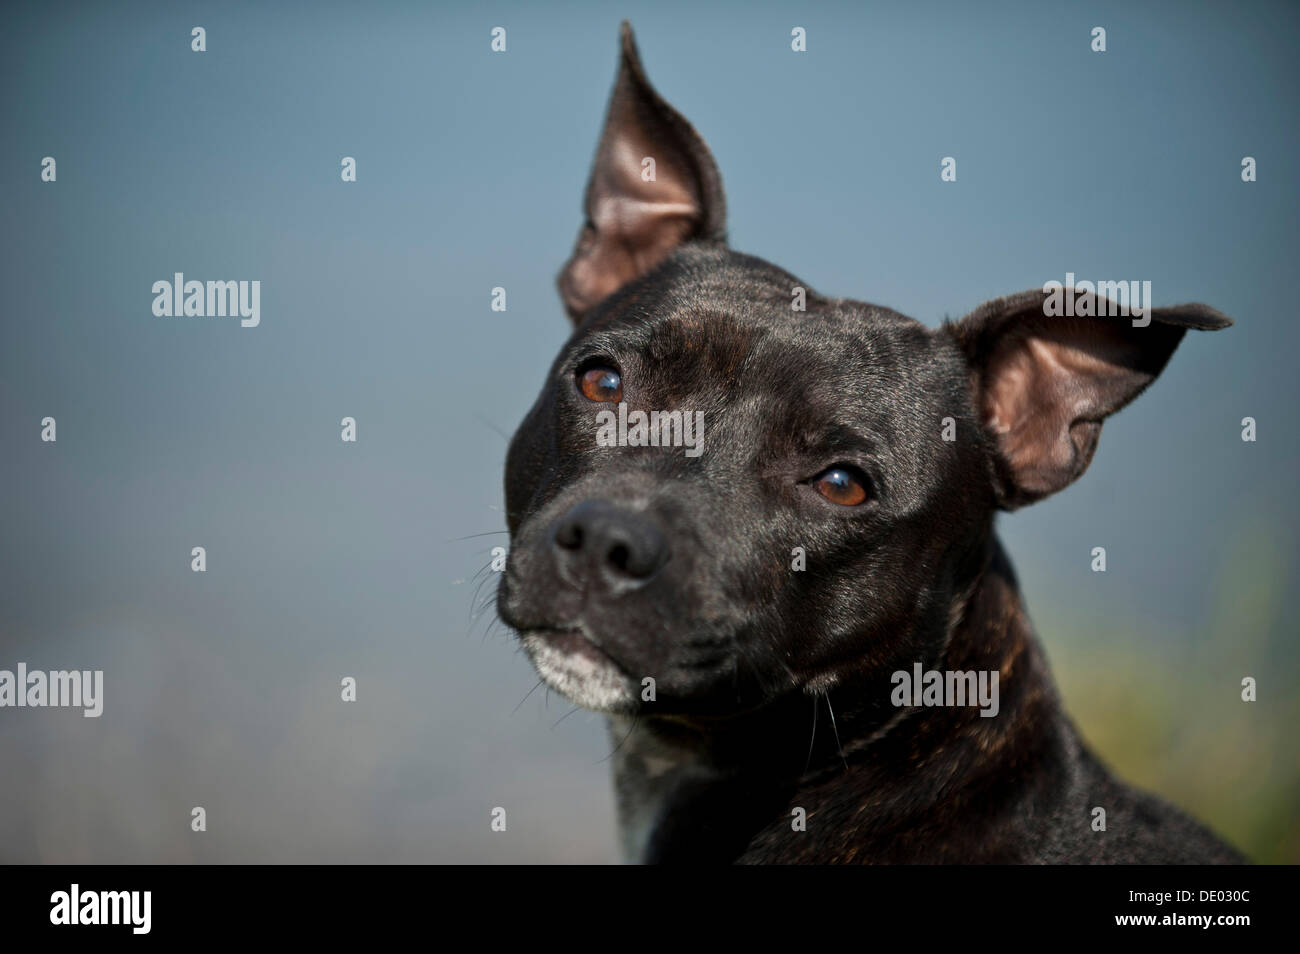 Portrait of a dog, Old English Staffordshire Bull Terrier - Stock Image